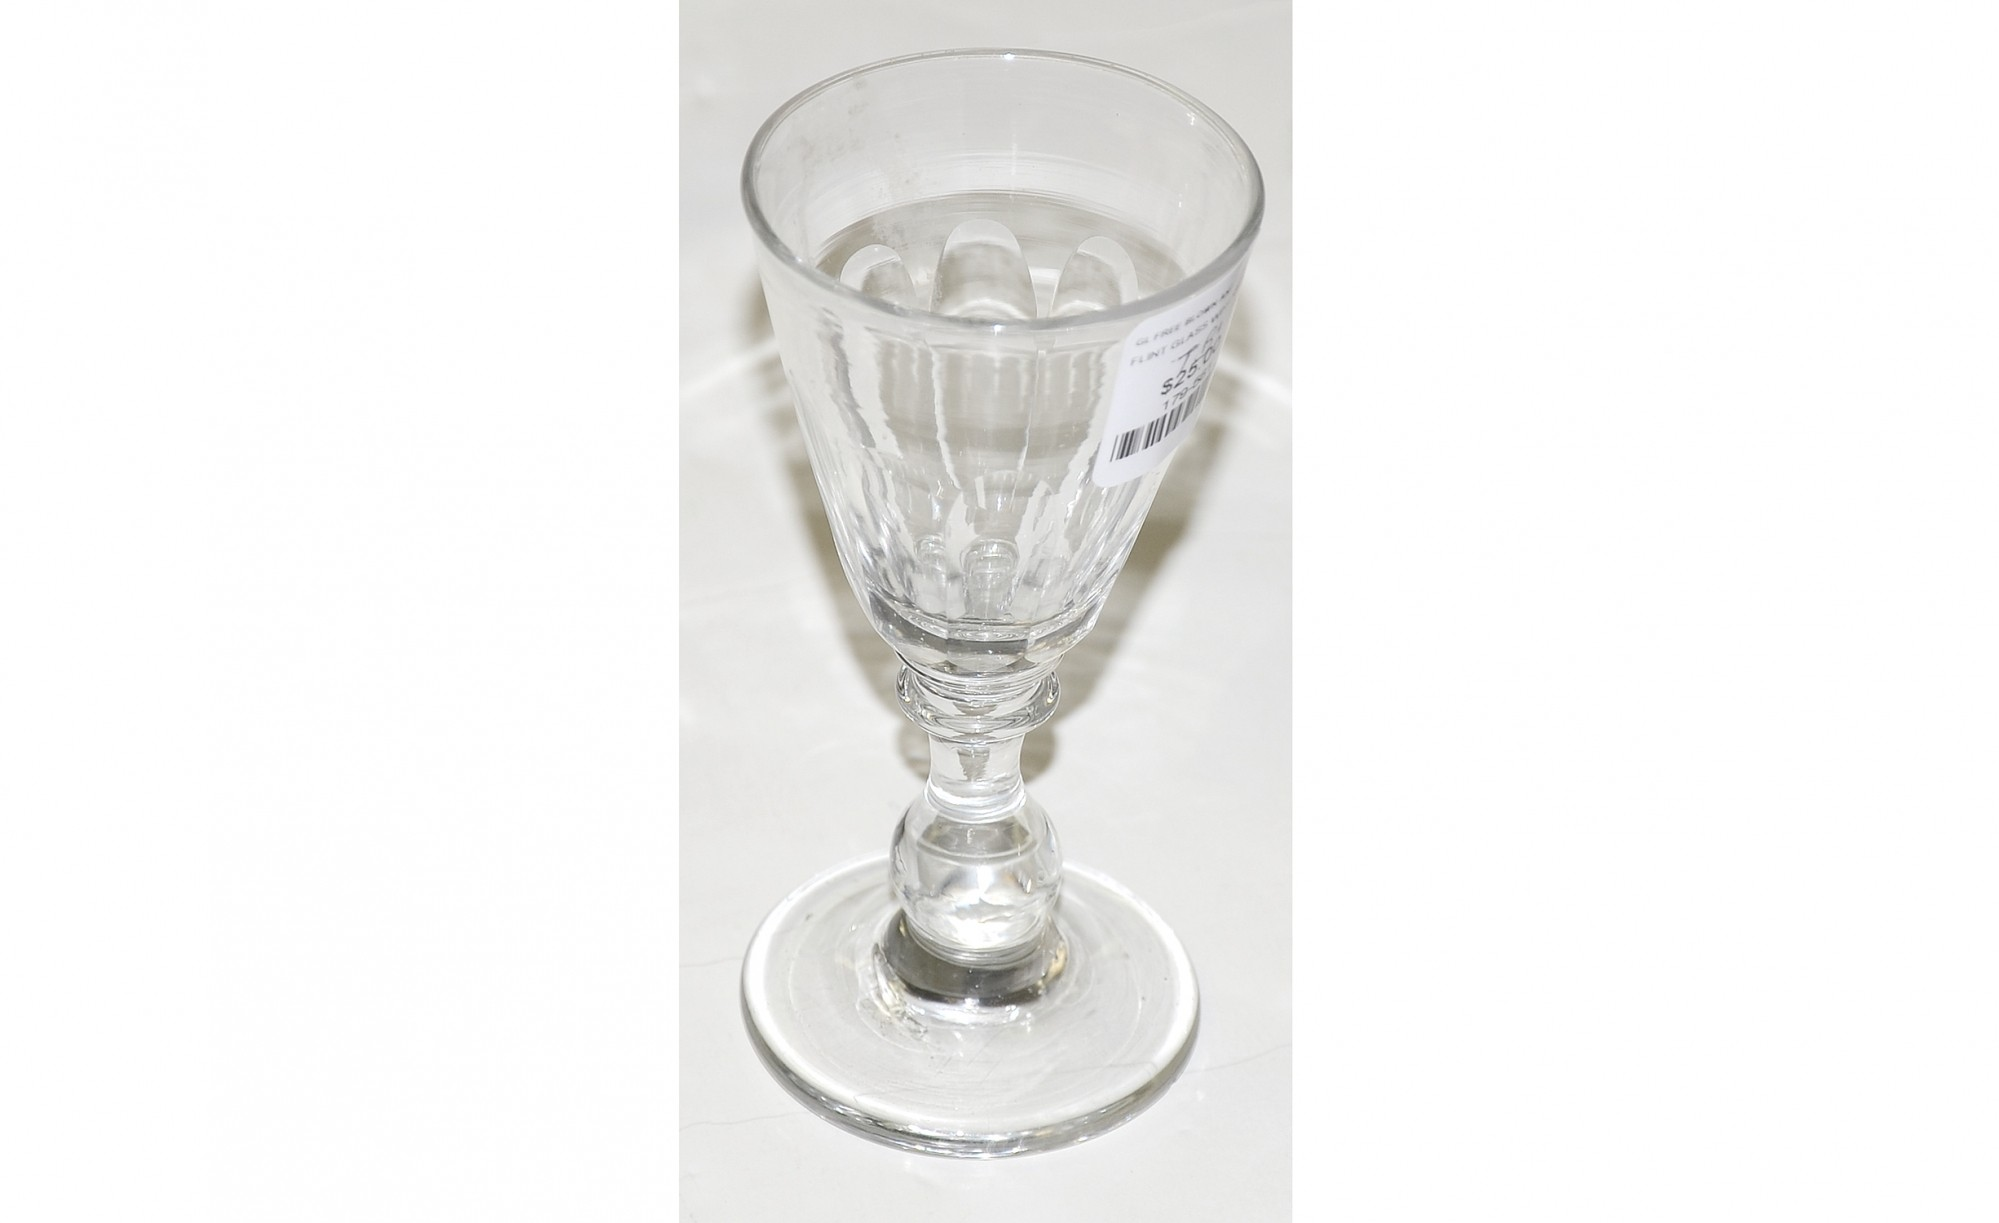 EARLY 19TH CENTURY FREE BLOWN AND CUT PANEL WINE GLASS